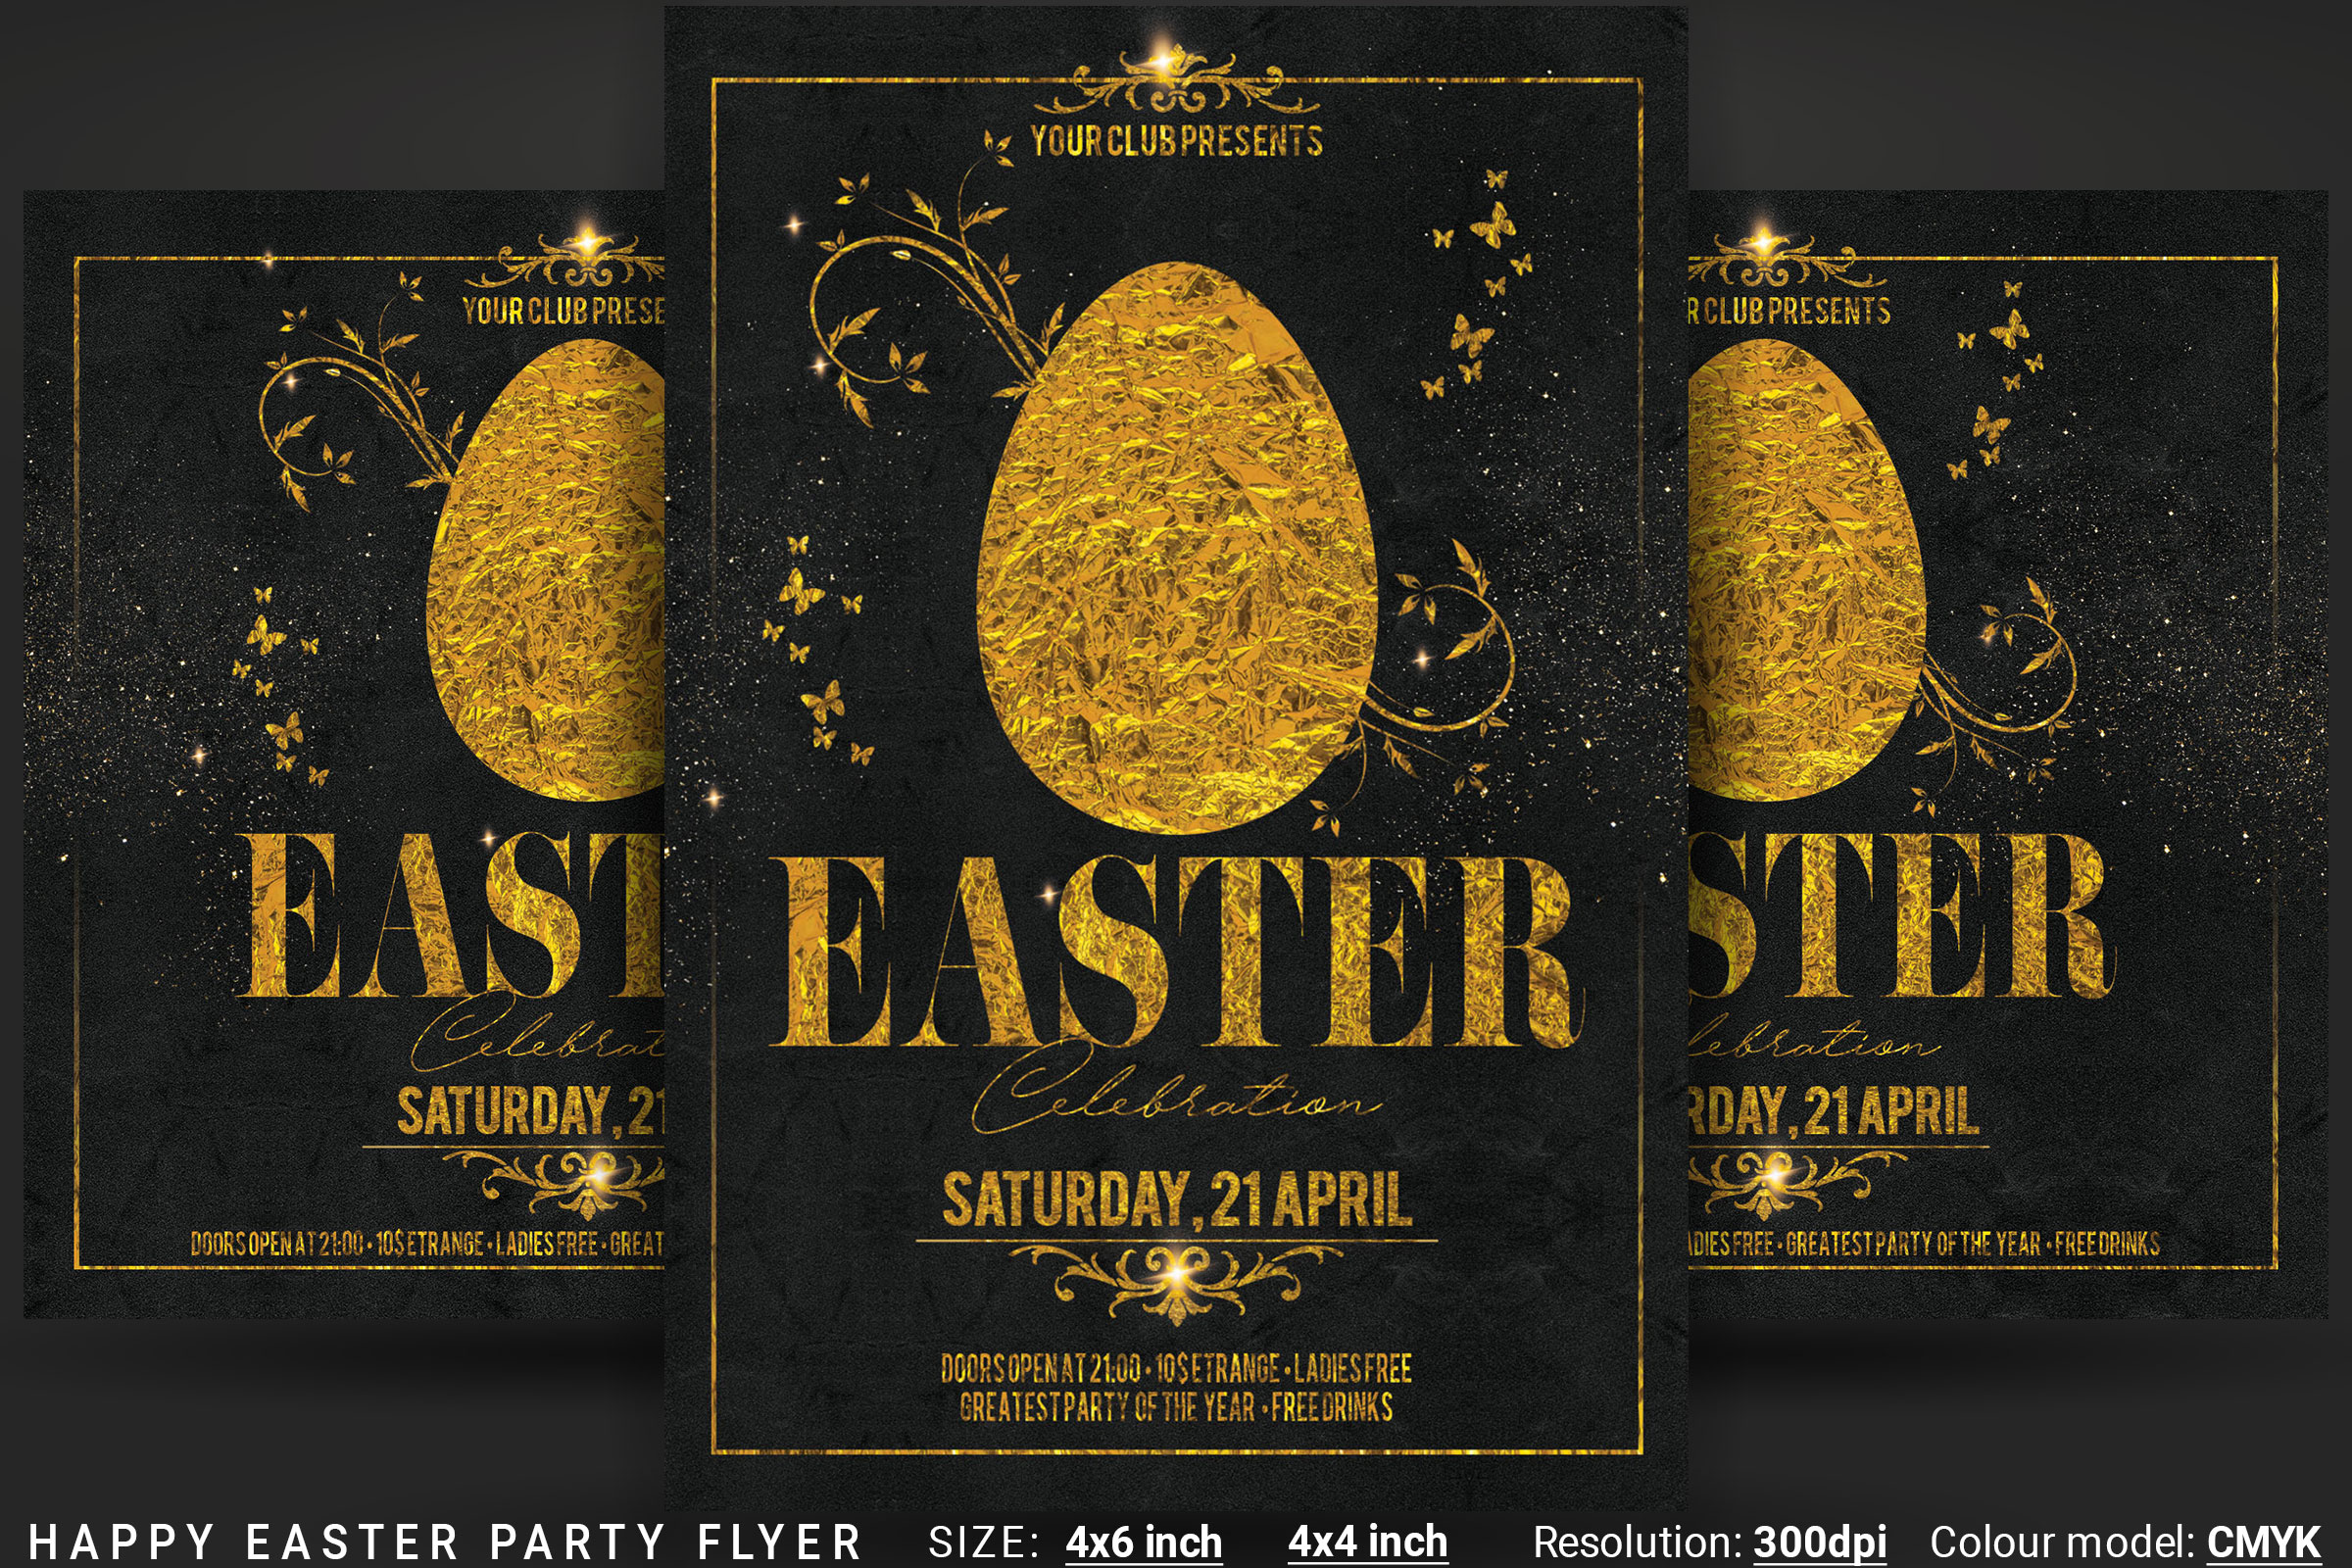 Happy Easter Party Flyer example image 1